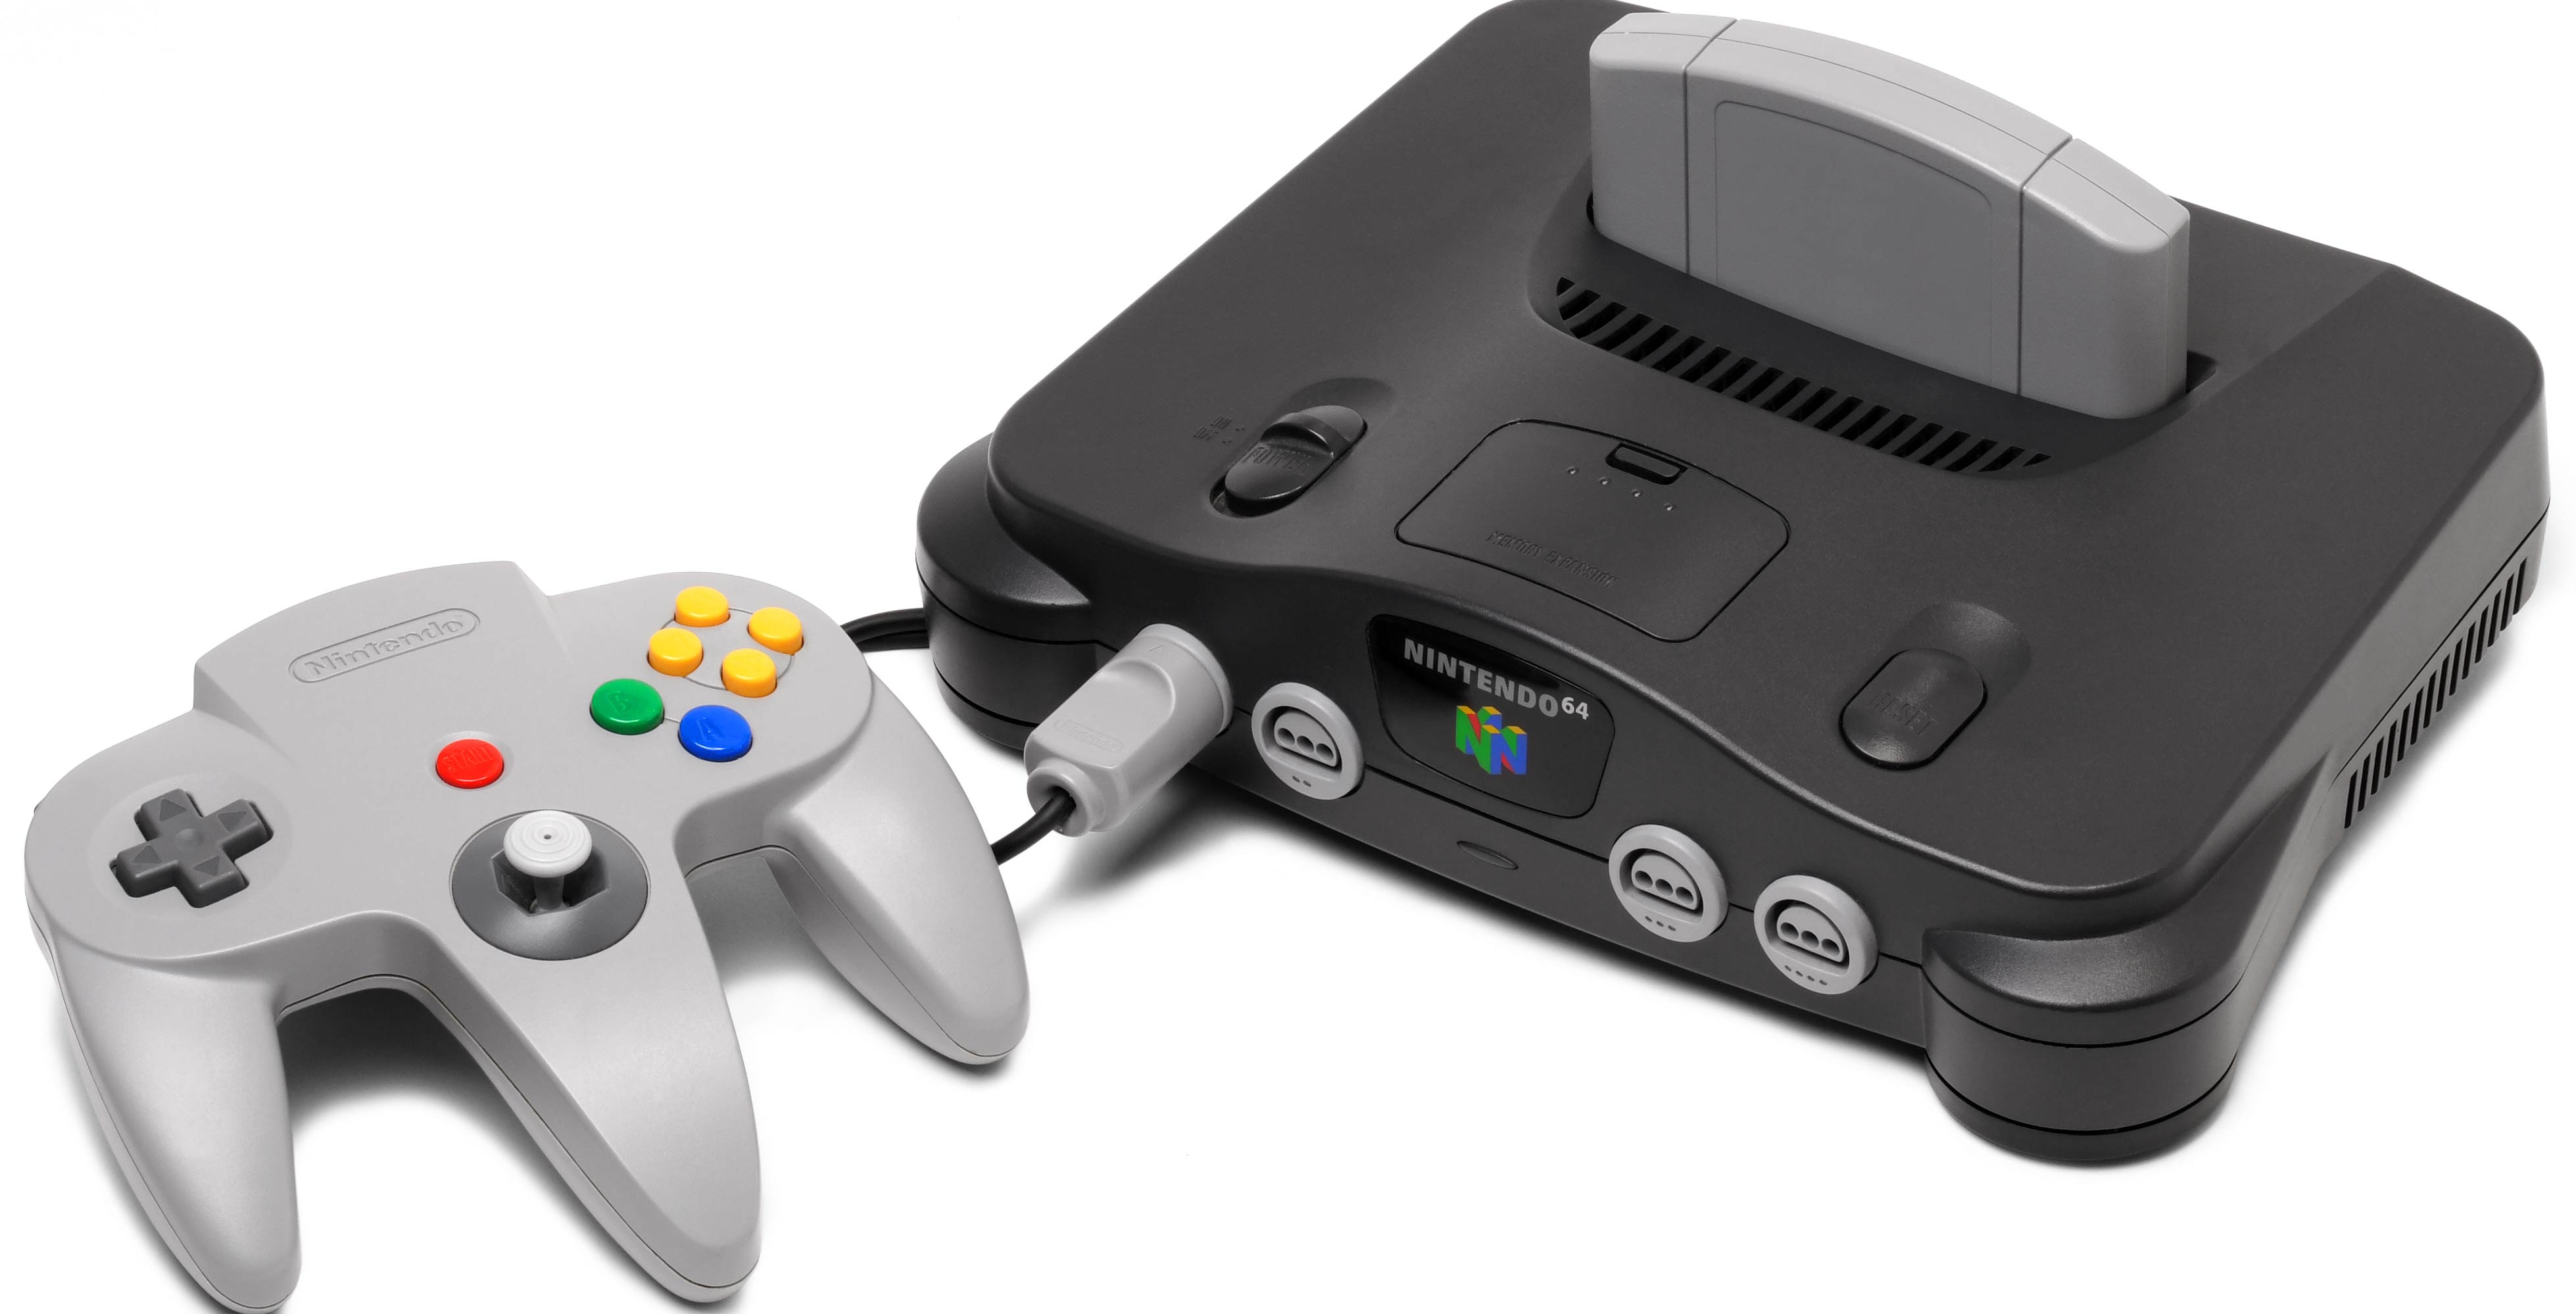 Nintendo Patent Points To The Release Of An N64 Classic Edition Gamepad Usb Interface Circuit Using Psx Or Update A Suggests That 64 May Be Set For Sometime Soon